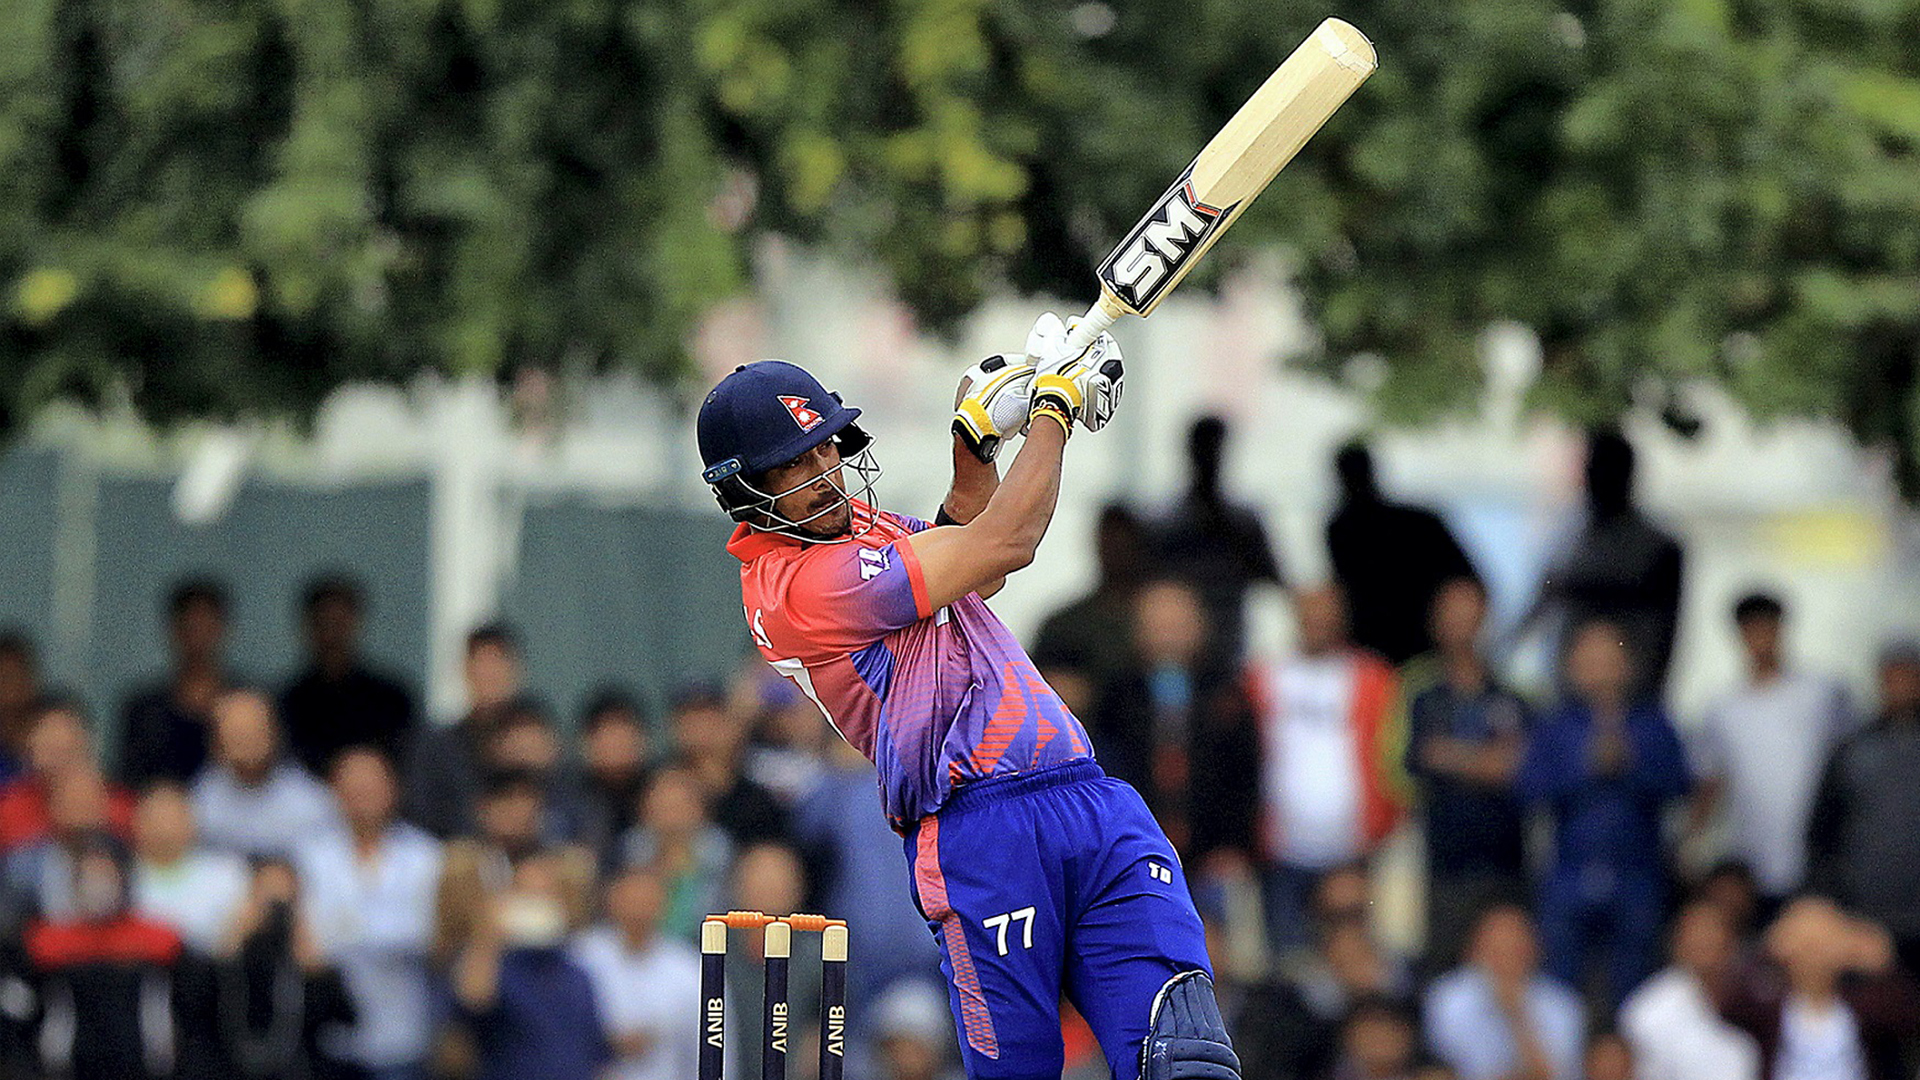 Paras Khadka to add Himalayan HEFT to Team Abu Dhabi